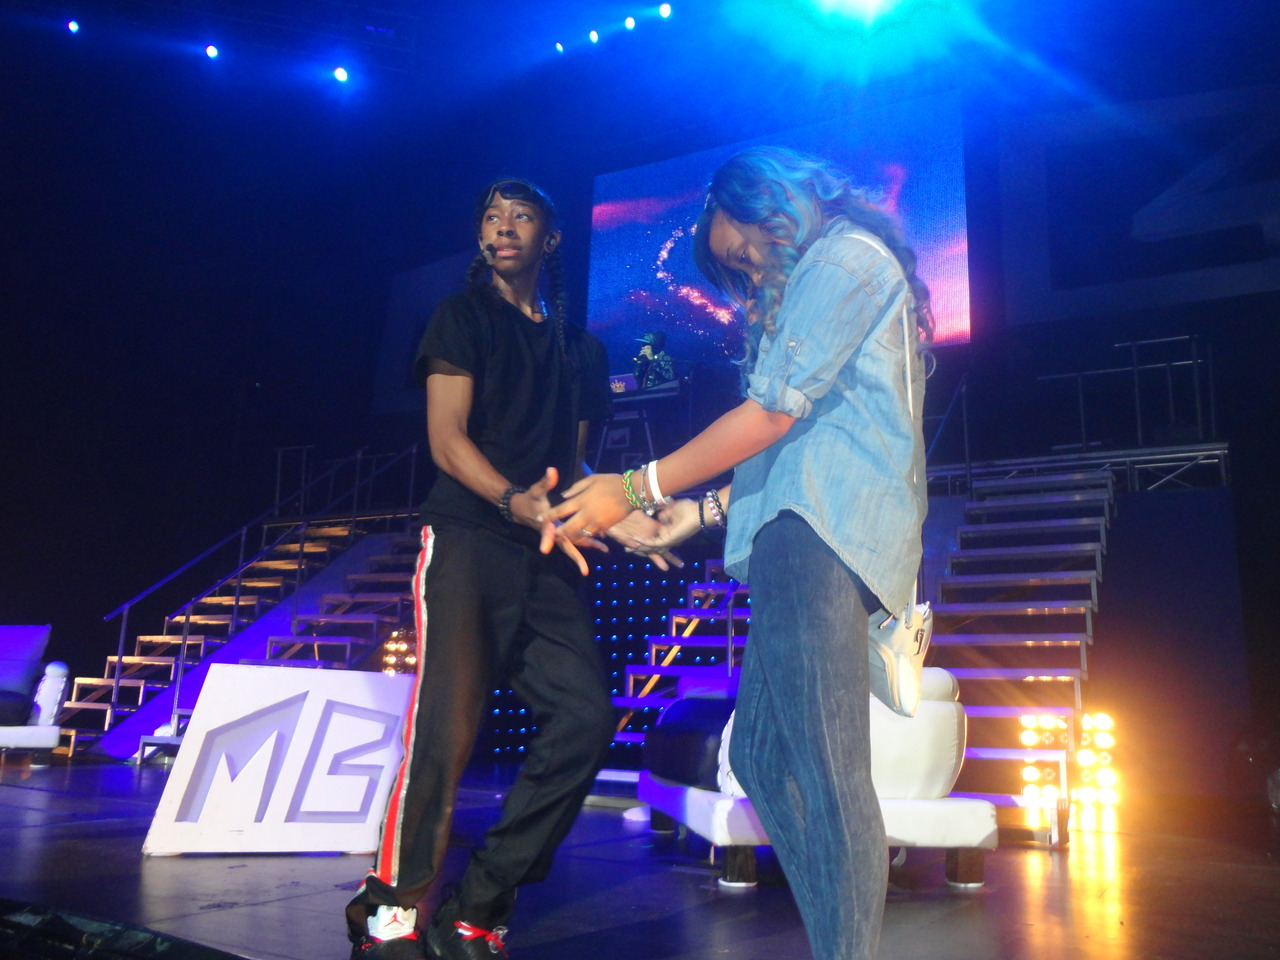 Ray Ray & star on stage